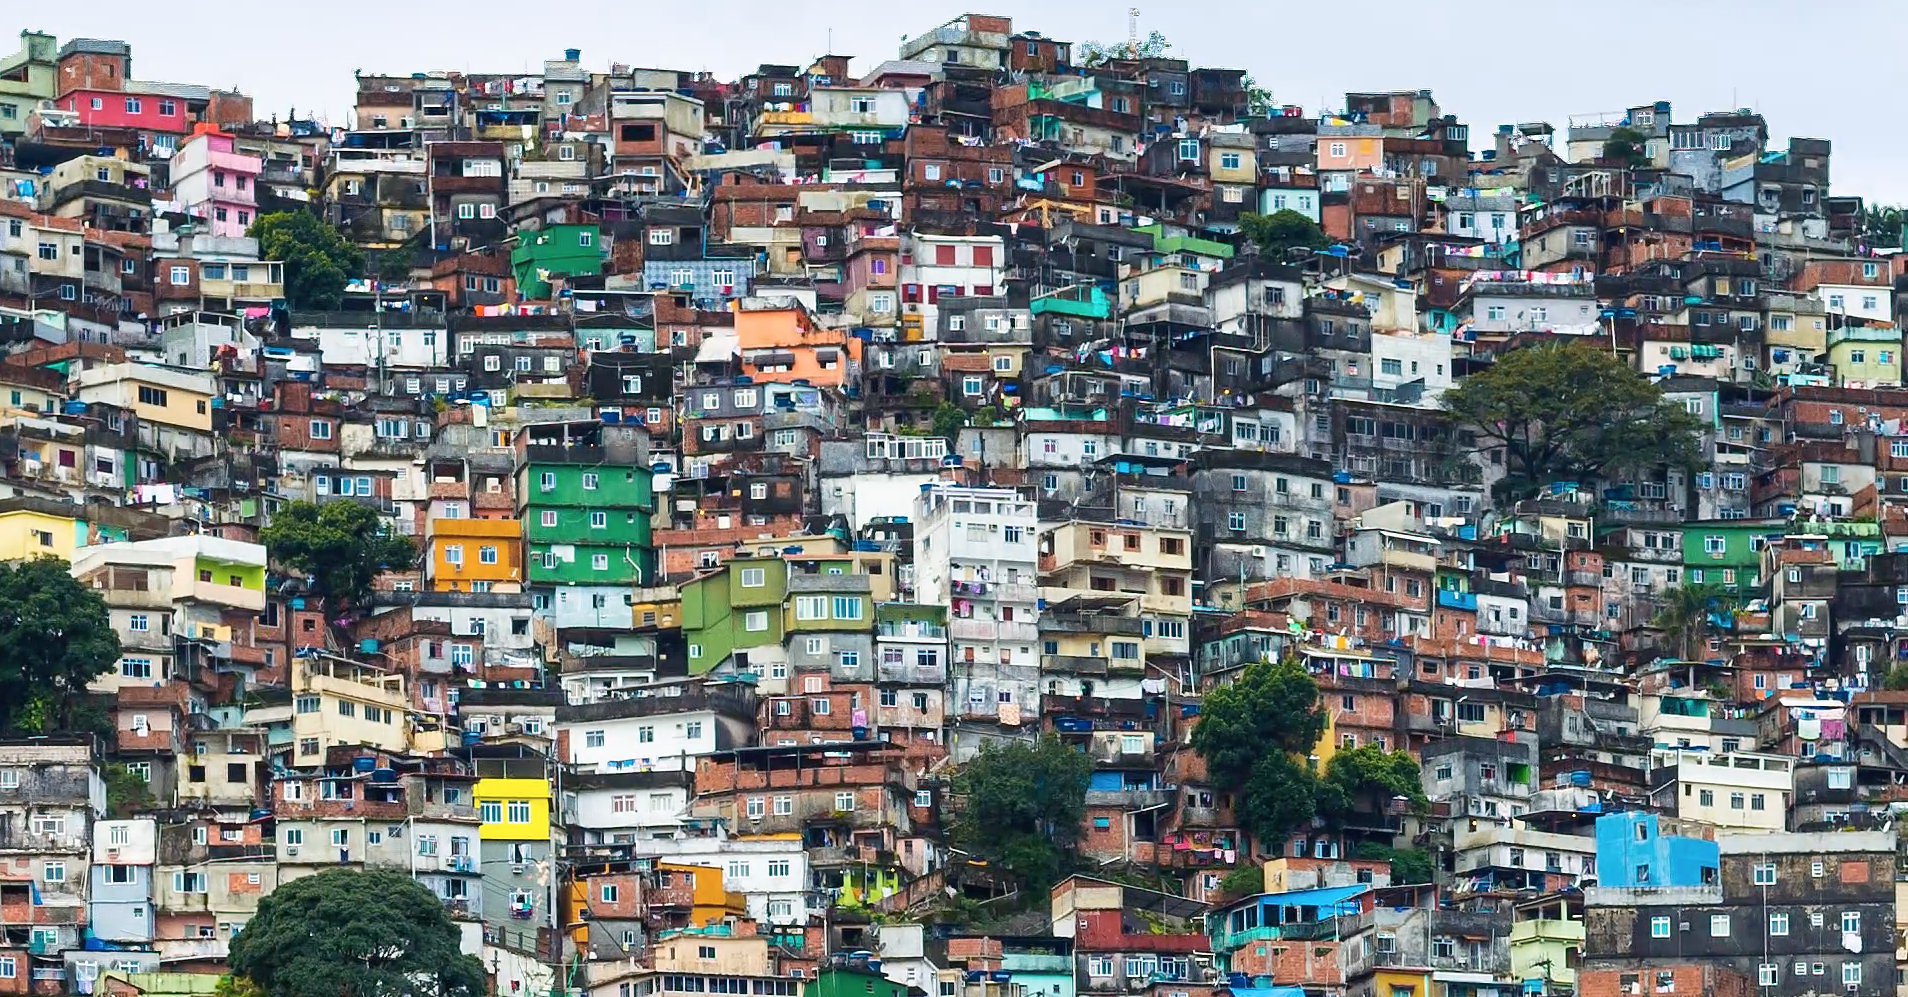 Timelapse of Brazil video   http://thecreatorsproject.vice.com/blog/10k-timelapse-of-brazil